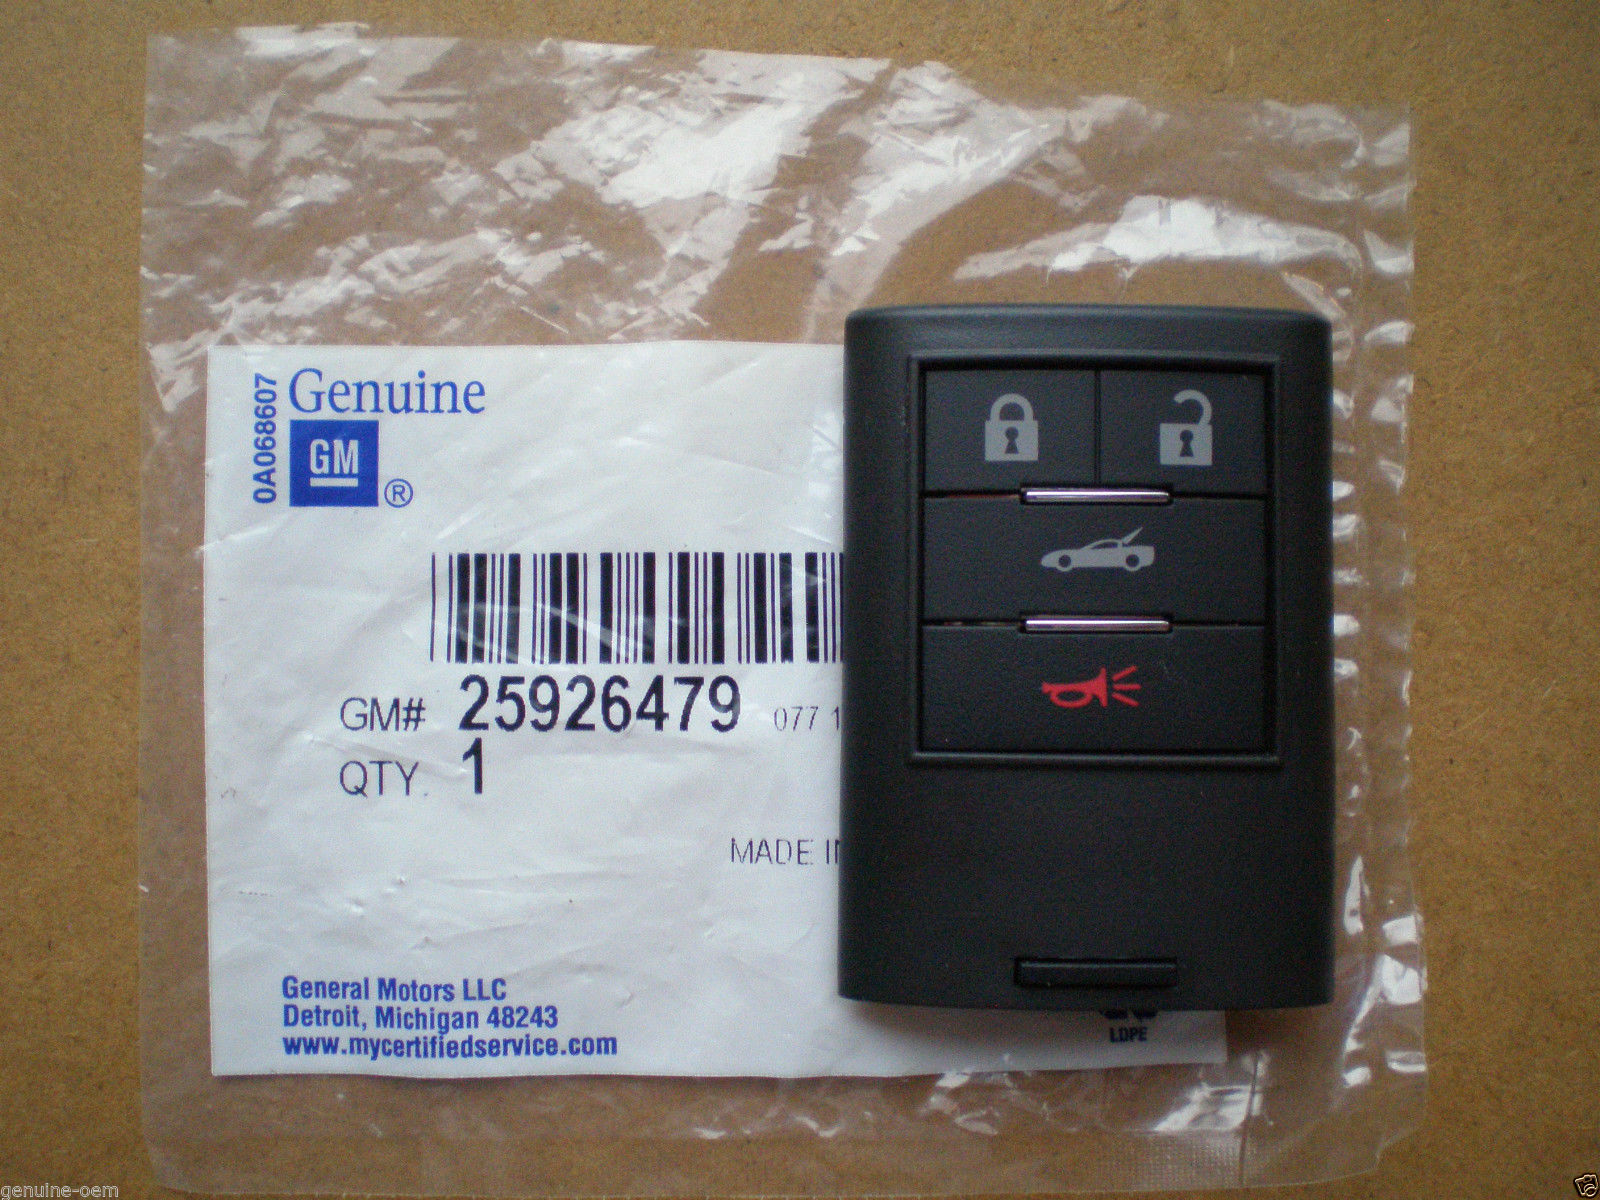 2008 Corvette C6 - Genuine GM Replacement Key Fob